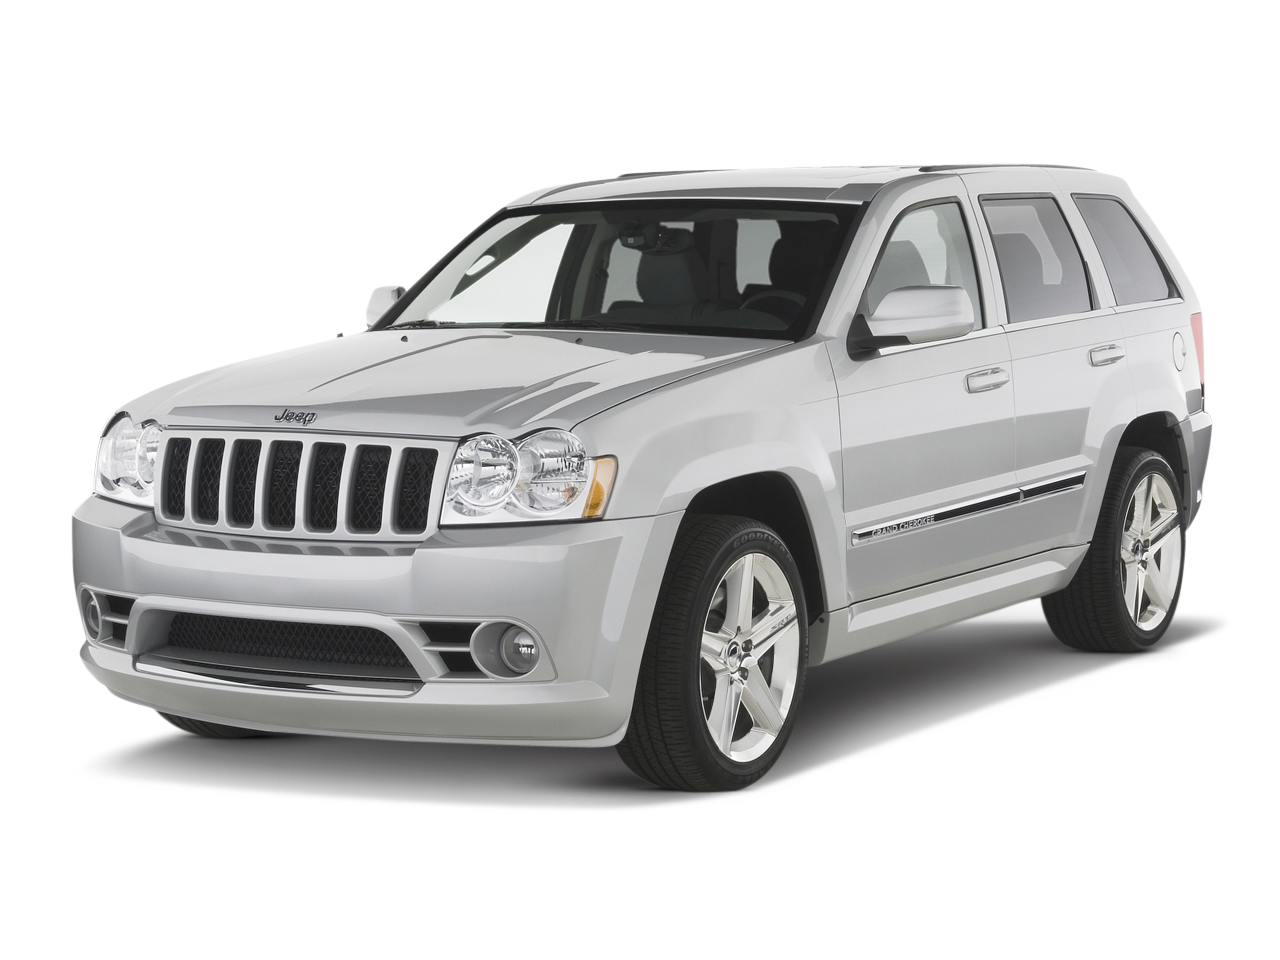 Jeep Grand Cherokee Srt Suv Angular Front on Overland Range Rover Sport